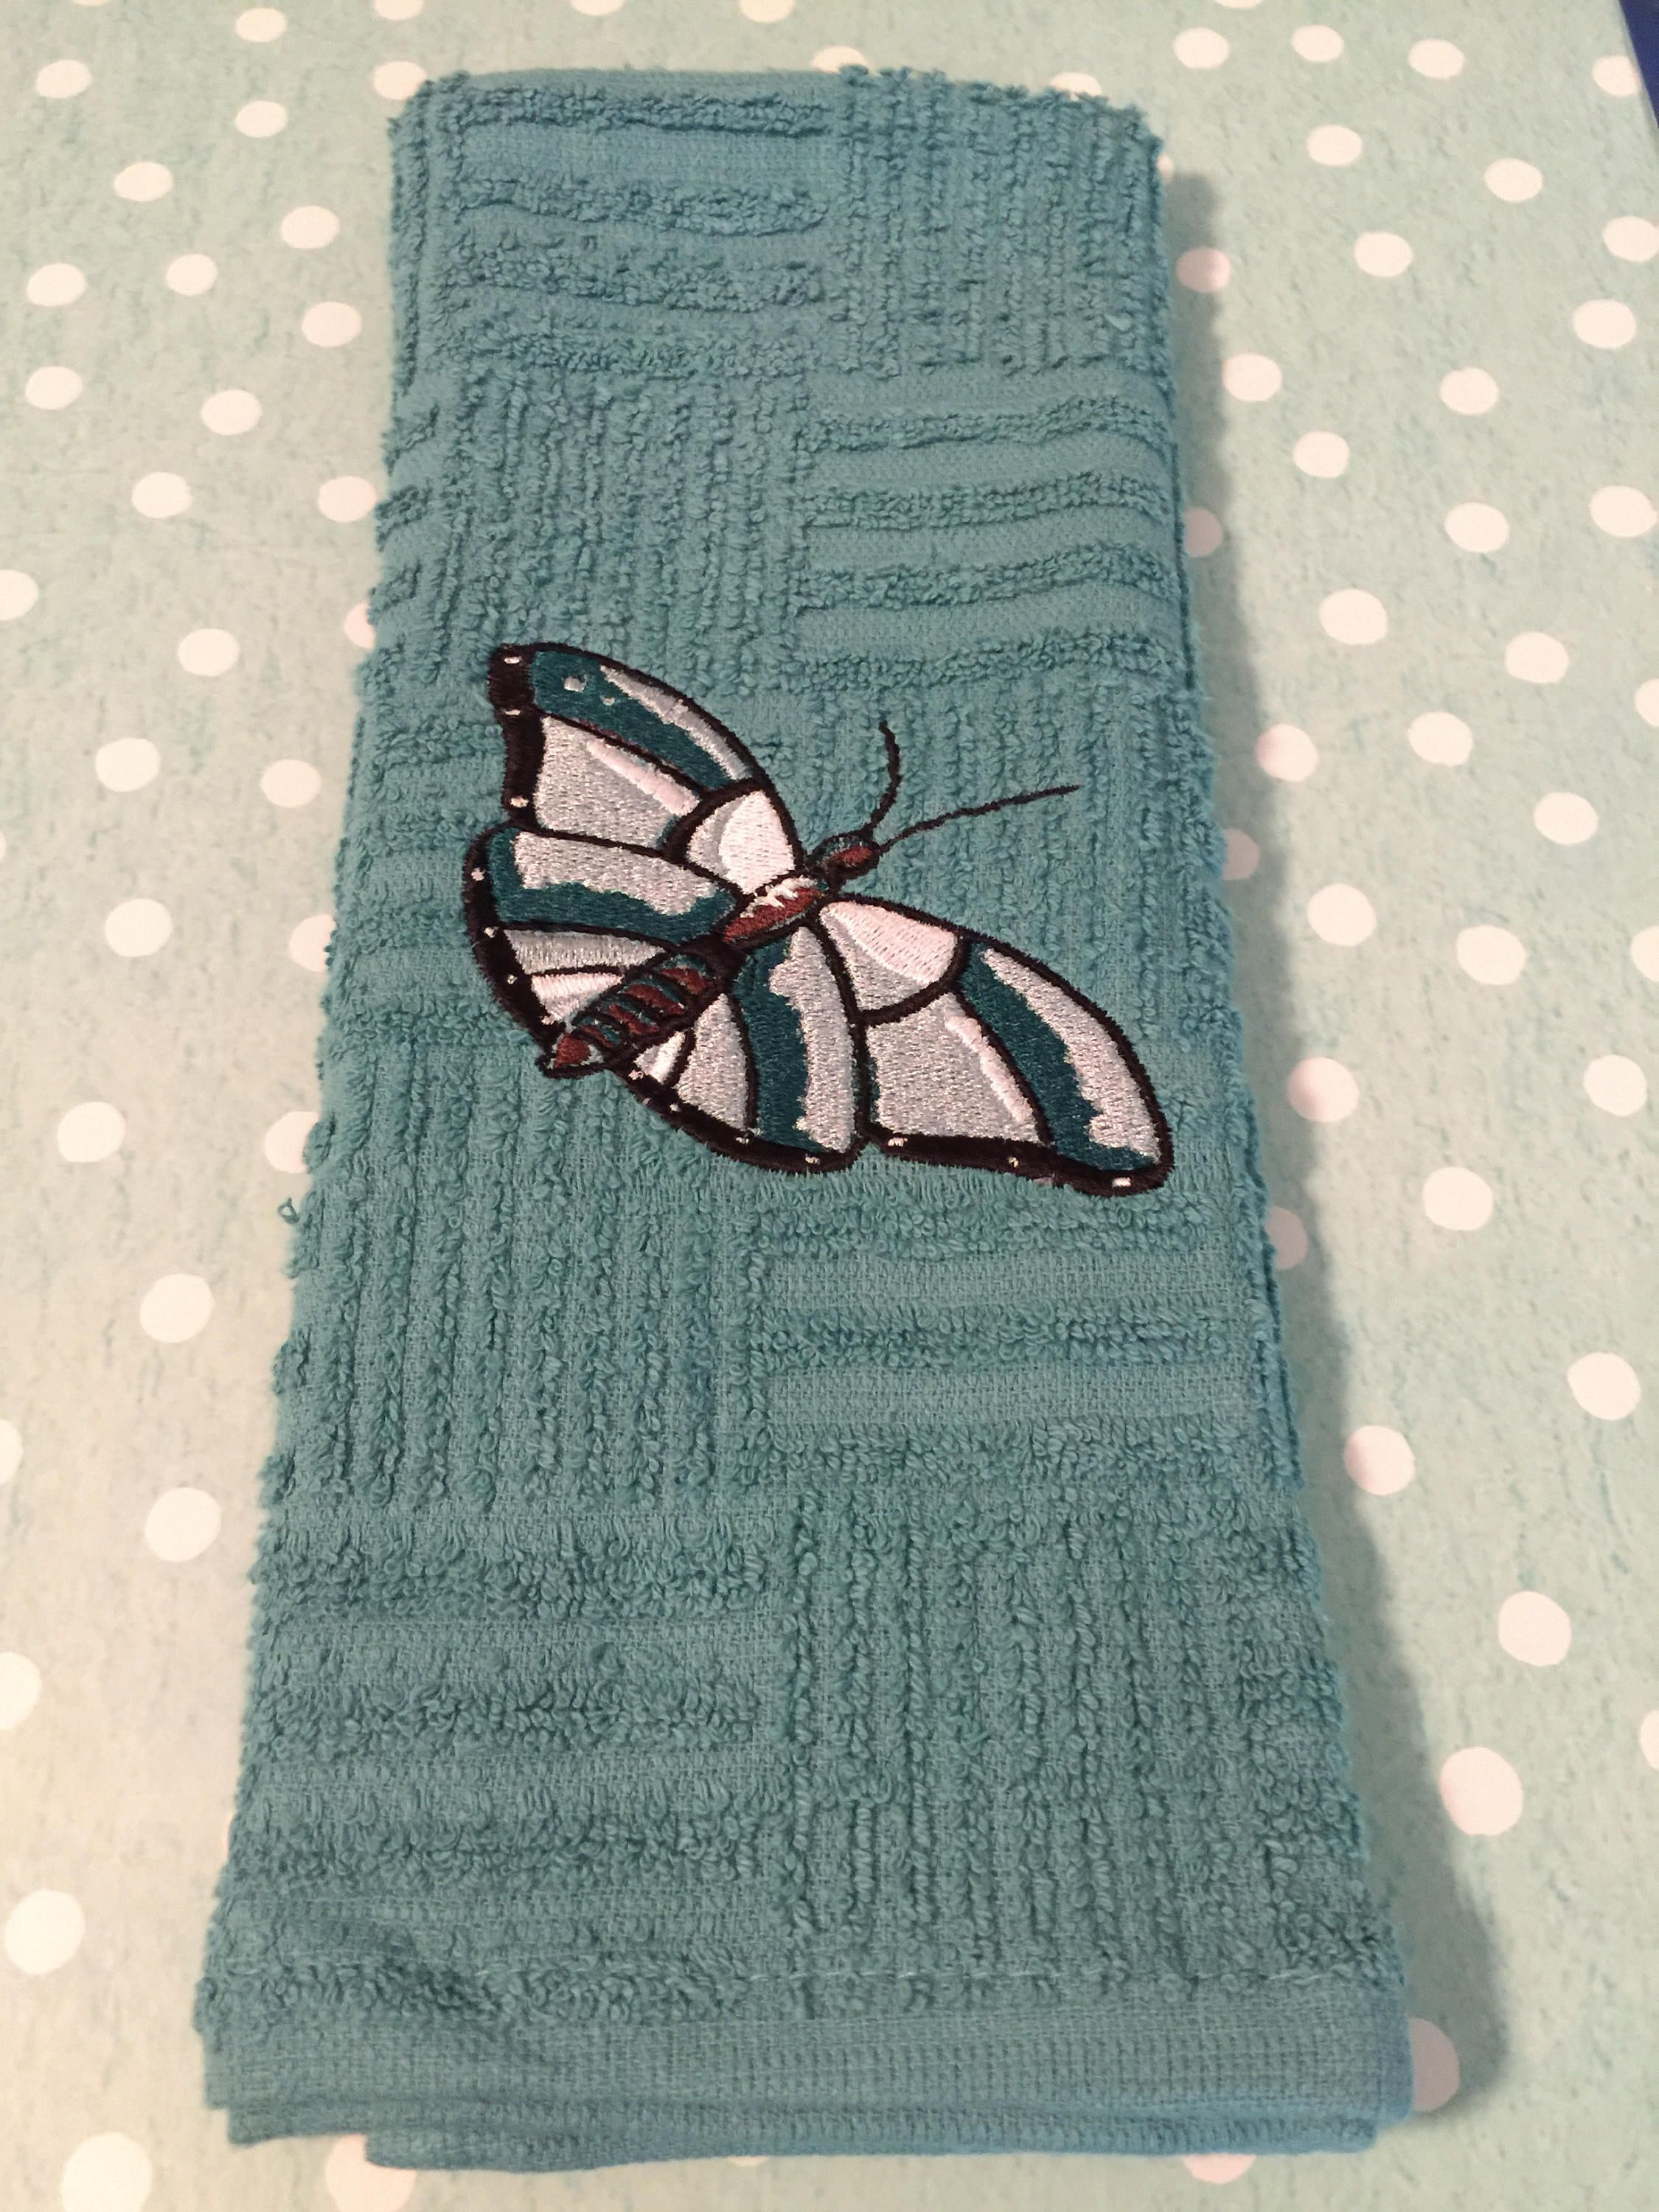 embroidered butterfly kitchen toweldsdesignsunlimited on etsy